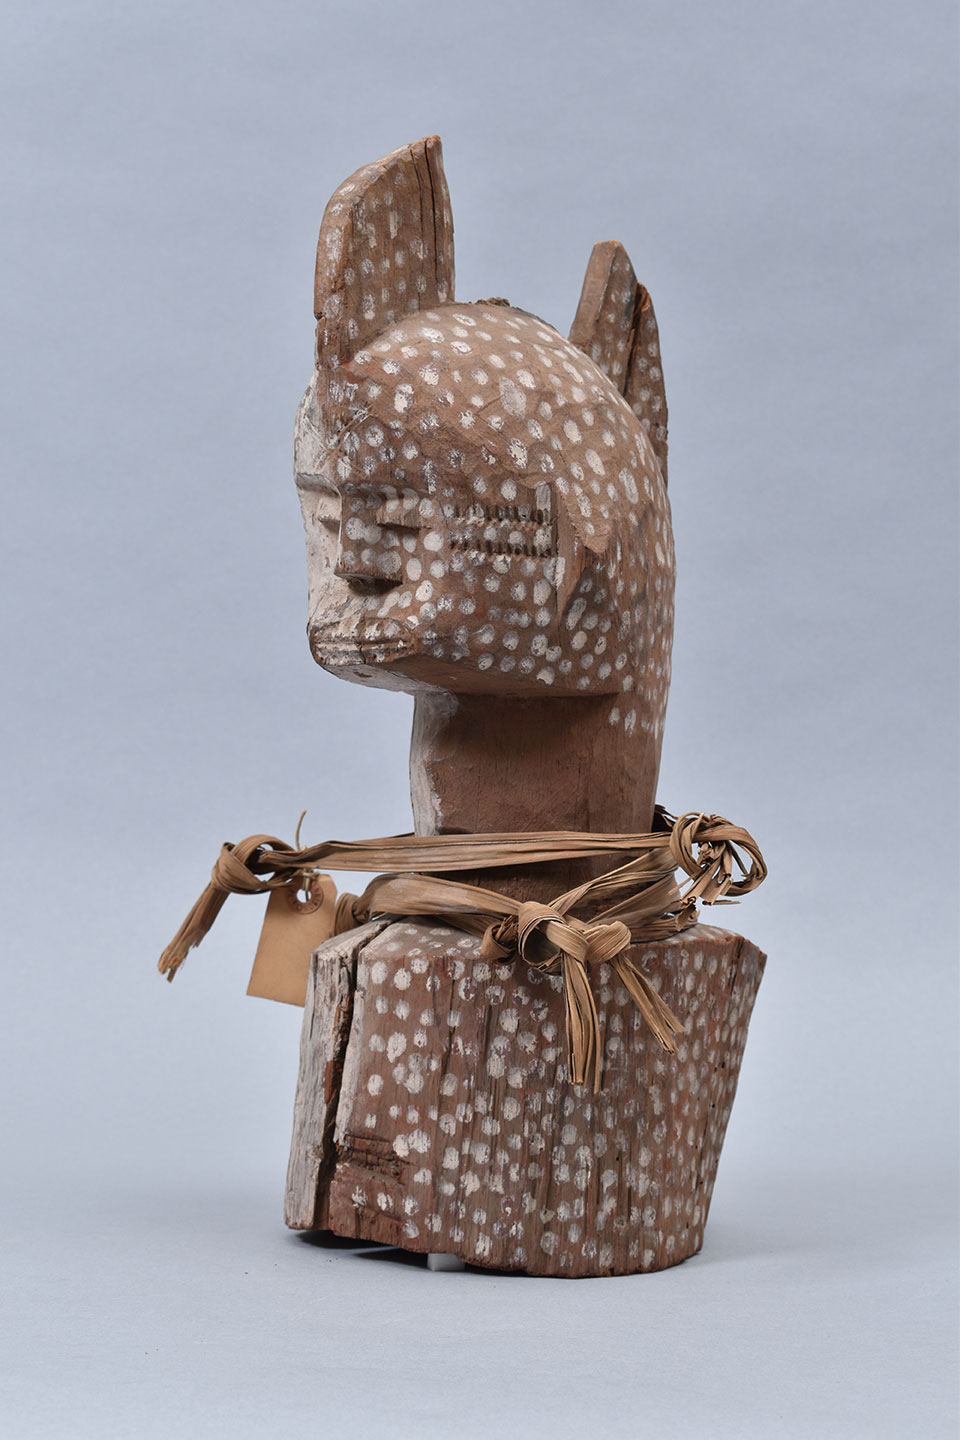 Carved and painted wooden head from Southern Nigeria